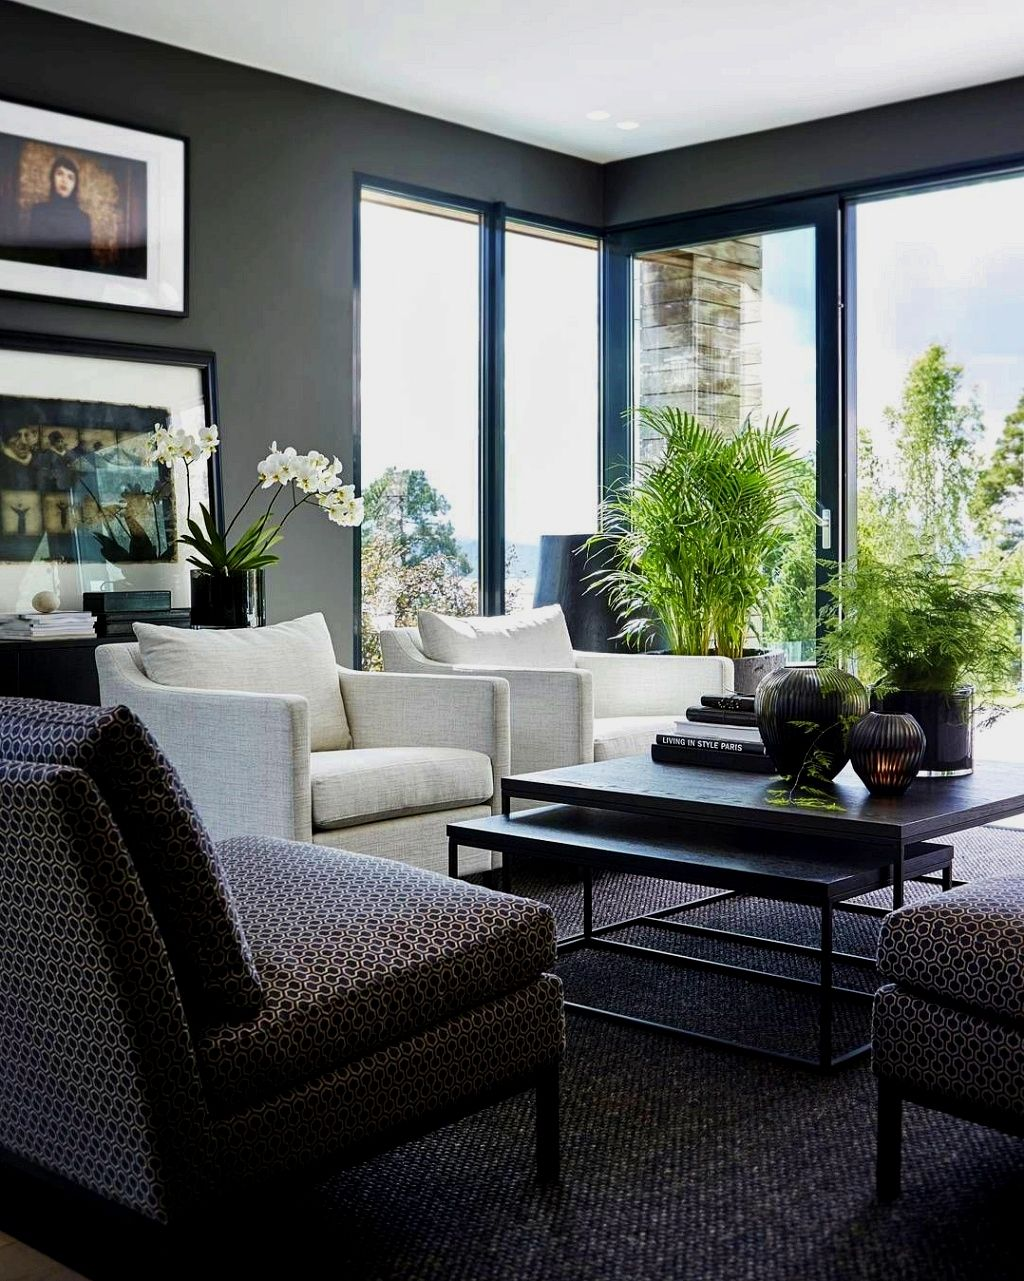 Change Your Living Room Decor On A Limited Budget In Six Steps My House My Garden Contemporary Living Room Design Modern Interior Design Contemporary Interior Design